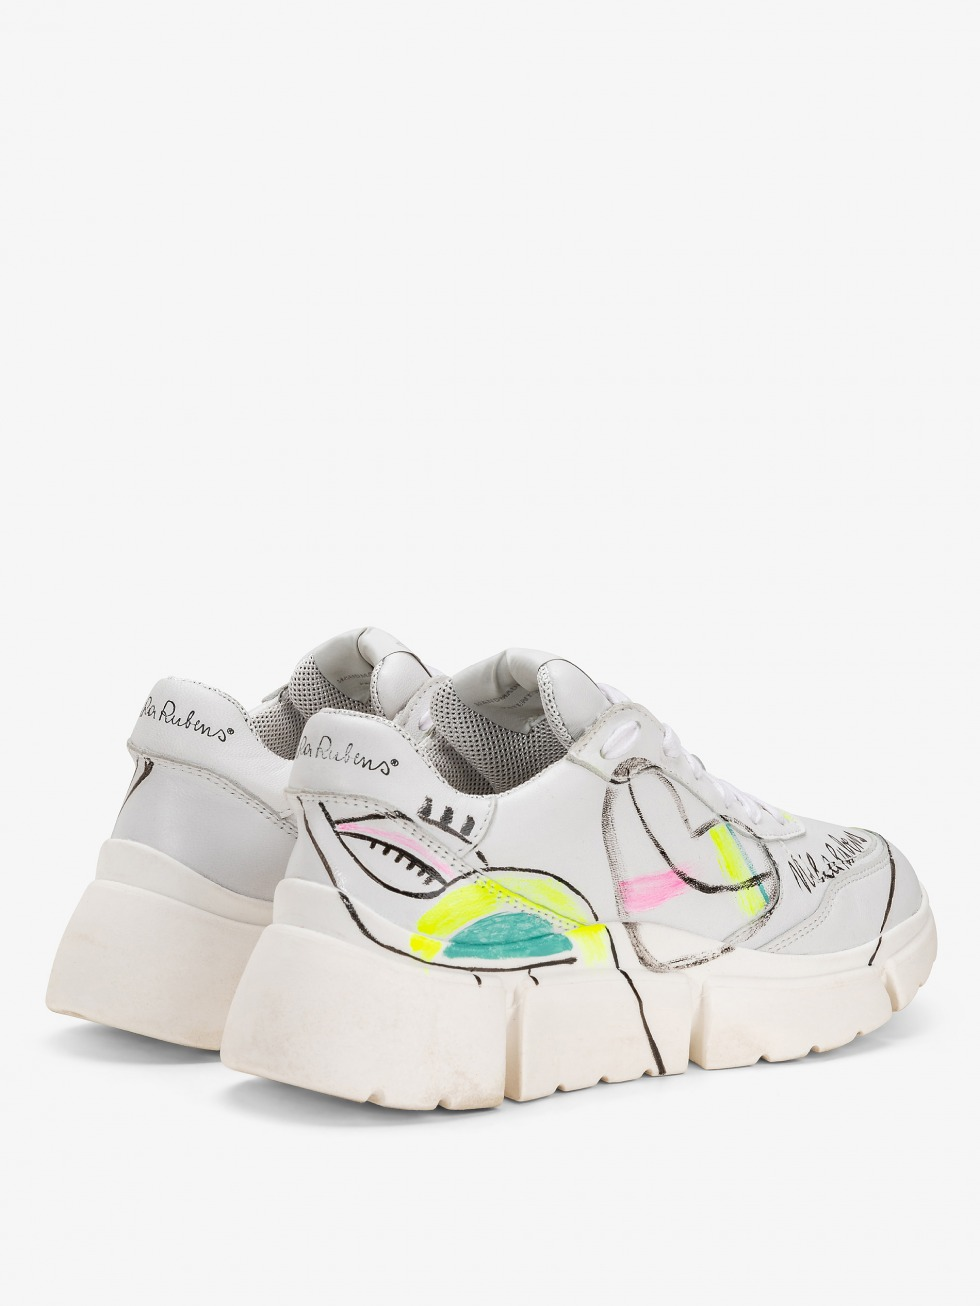 Stinger Chunky Sneakers -Art Heart